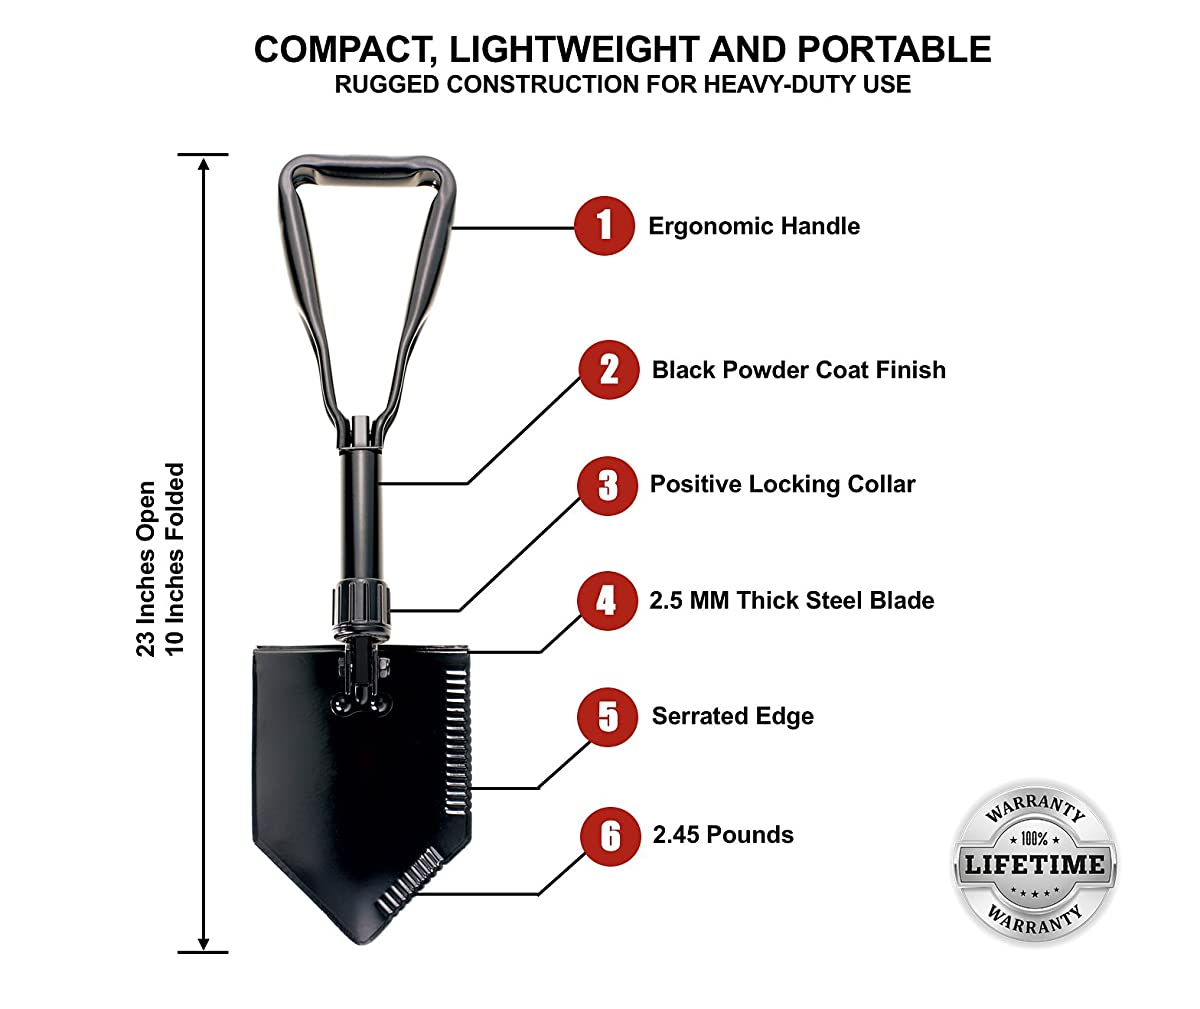 SERGEANT Folding Shovel, Entrenching Tool, E-Tool, Military Grade, for Camping, Gardening, Job Site or Survival Kit, with Steel Blade, Serrated Edge, Black Powder Coat Finish and Tactical Carry Case